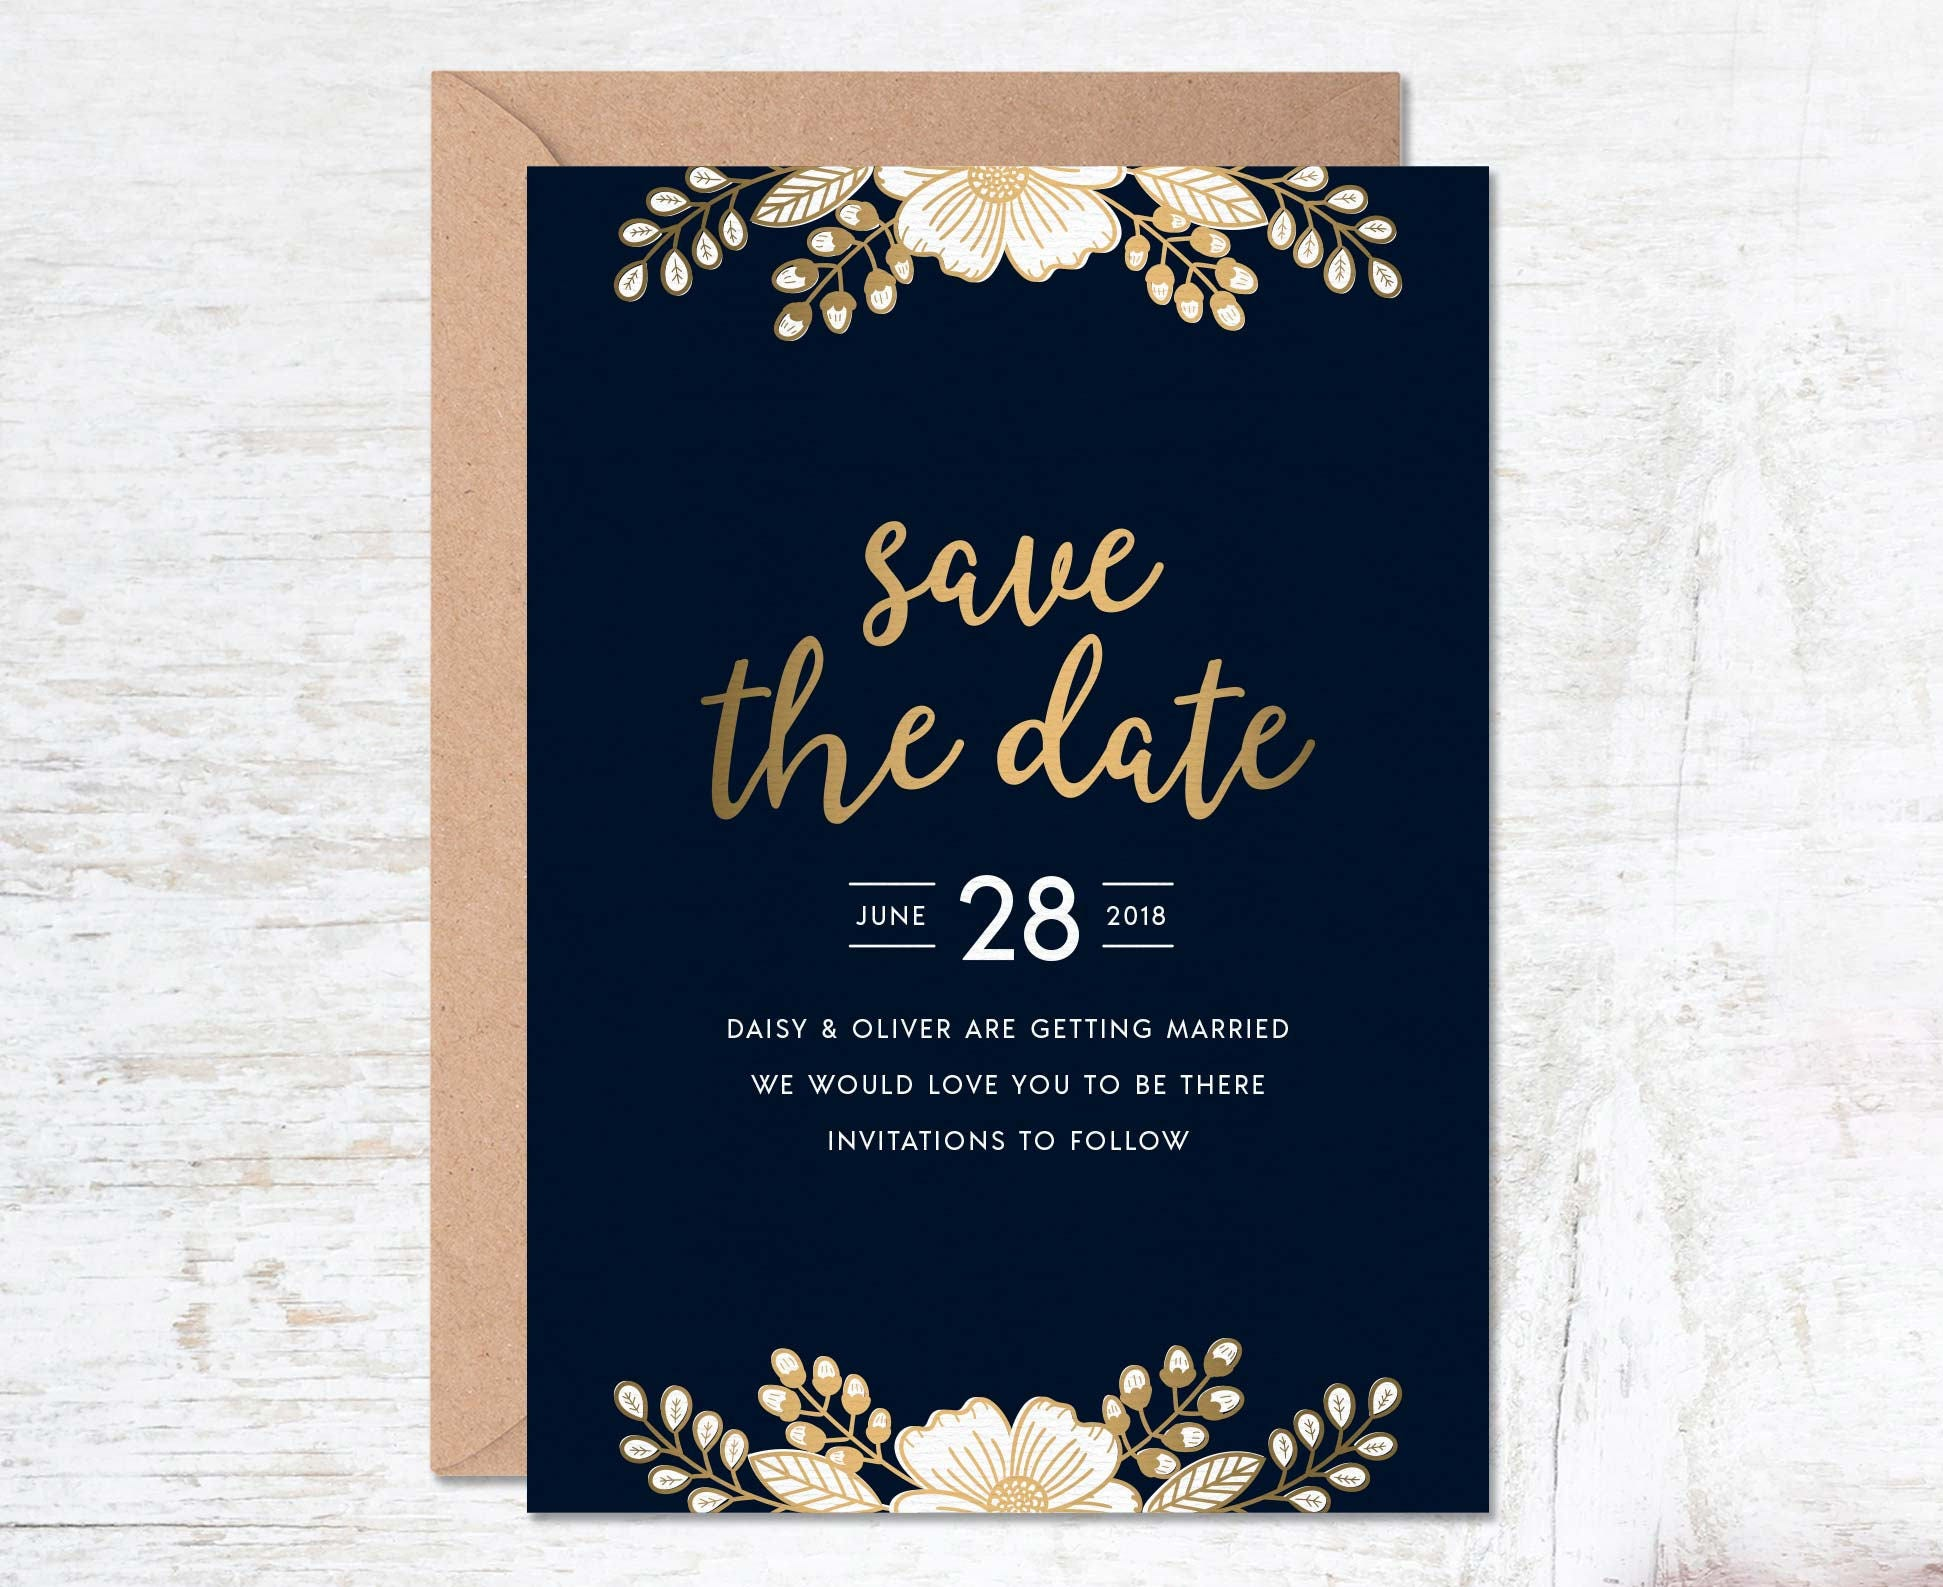 Wedding Invitation Save The Date: Gold Save The Date Save The Date Template Wedding